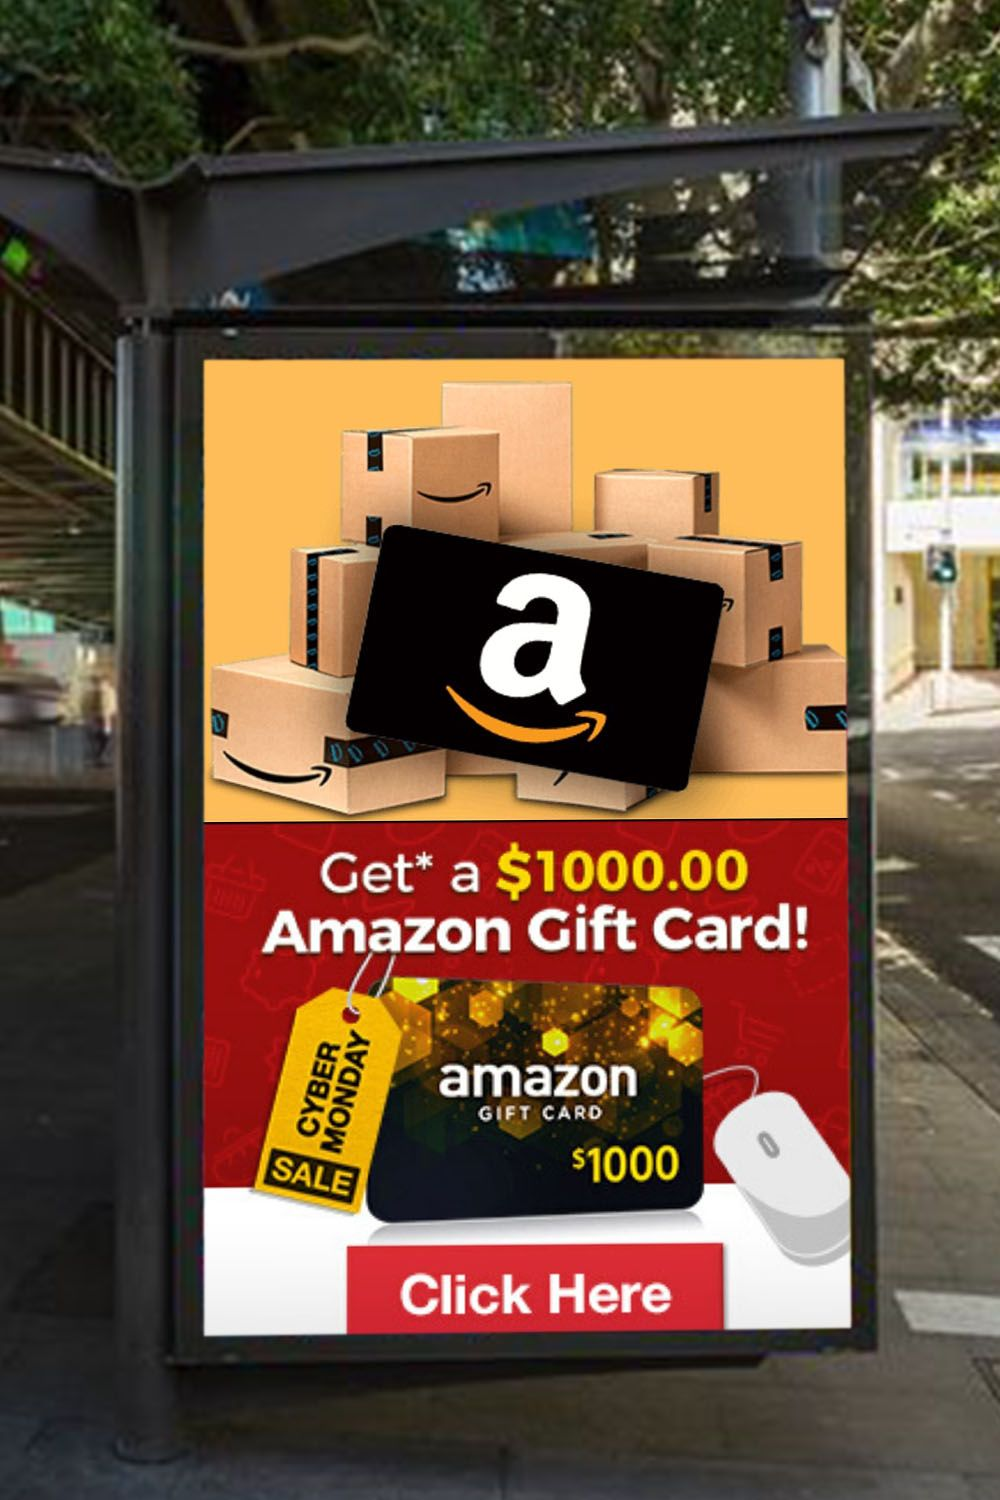 Survey For Amazon Gift Card Free Offer Amazon Gift Card Free Amazon Gift Cards Free Amazon Products